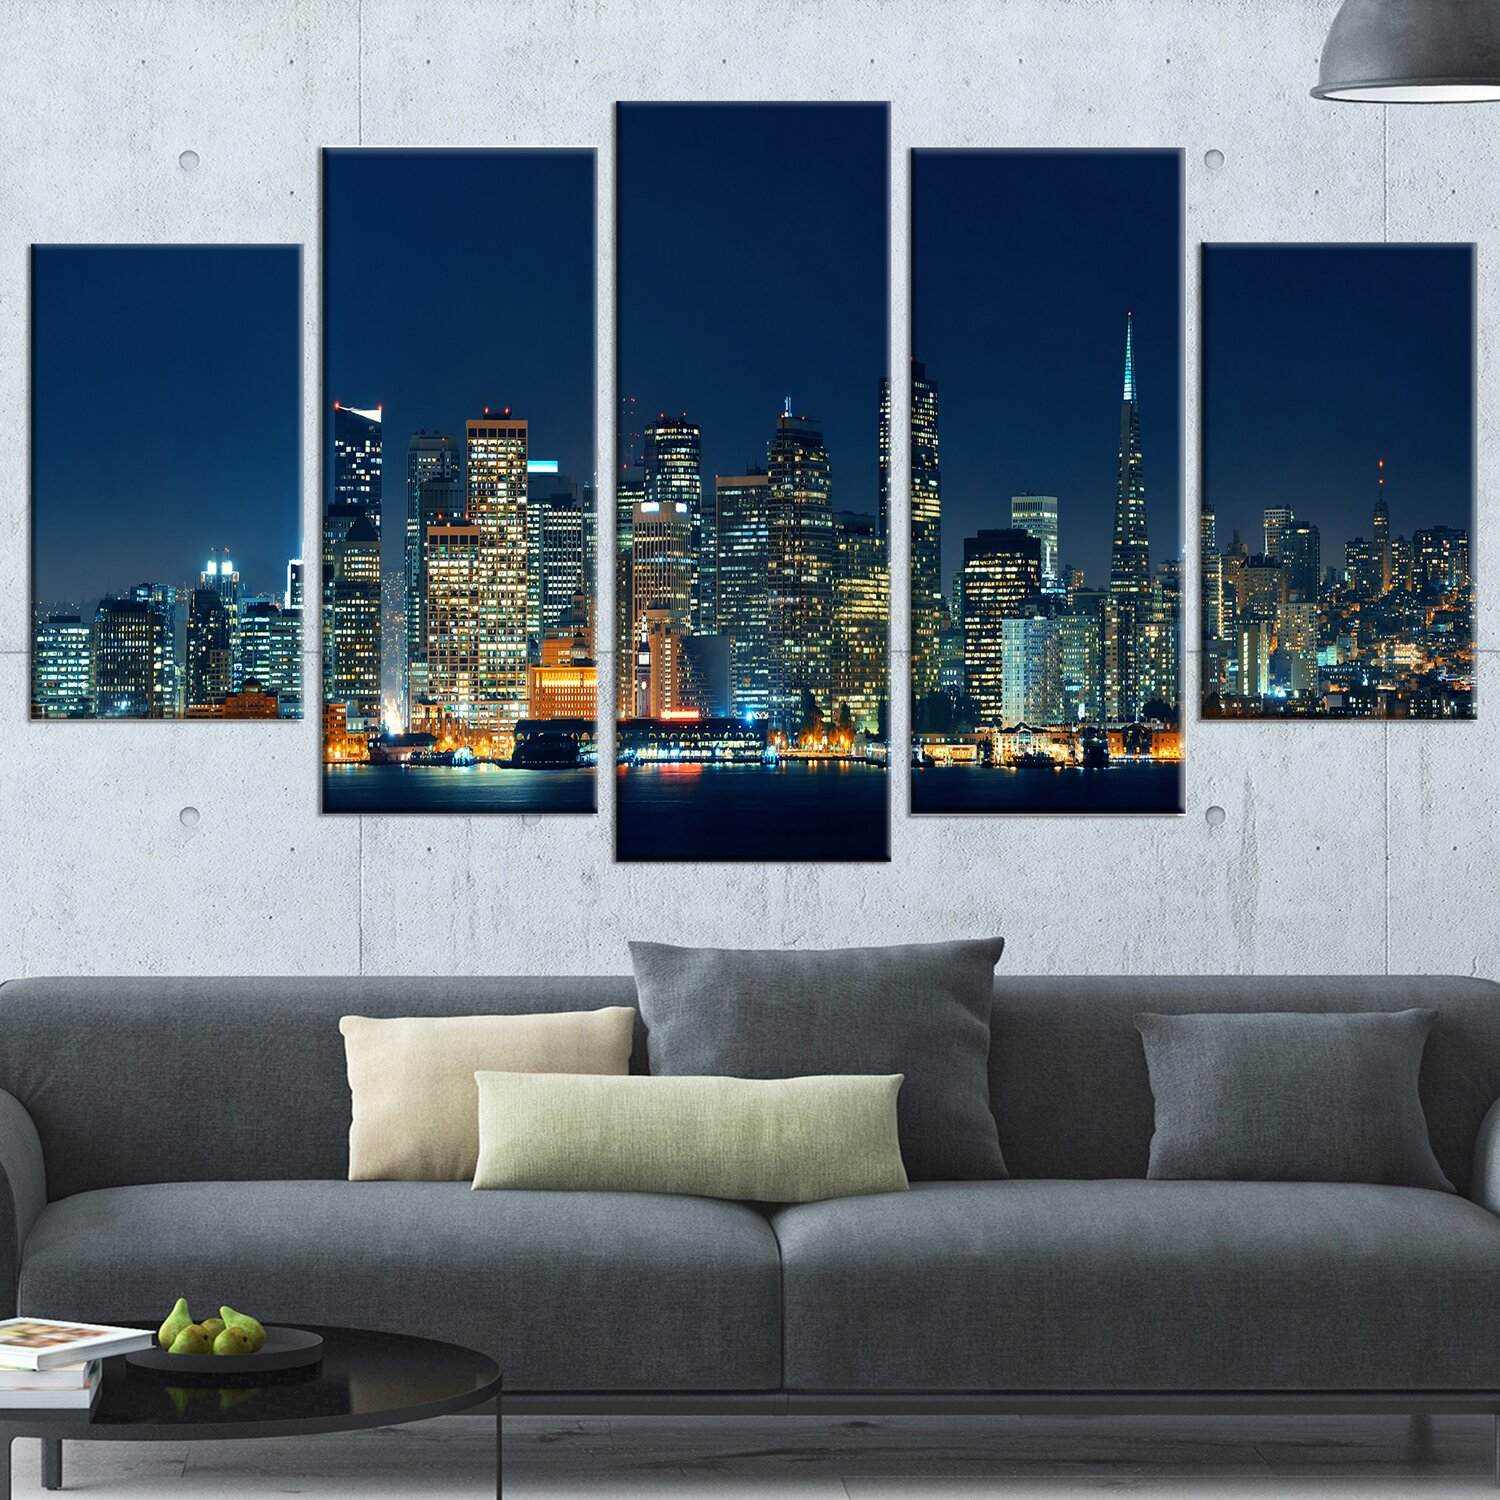 Design Art u0027San Francisco Skyline at Nightu0027 5 Piece Wall Art on Wrapped  Canvas